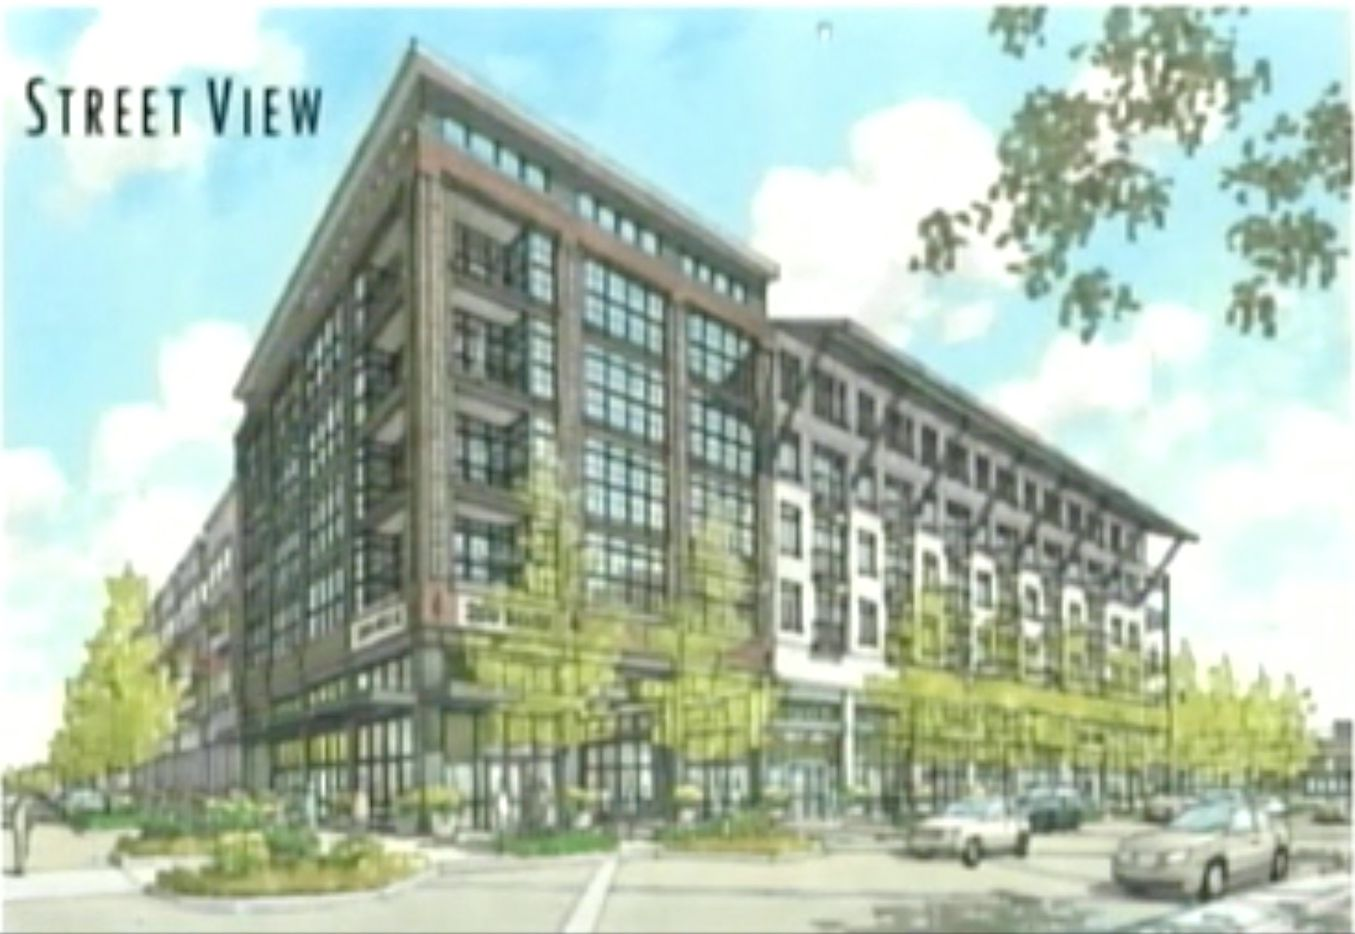 The planned Town Central project includes retail, apartments and townhomes.